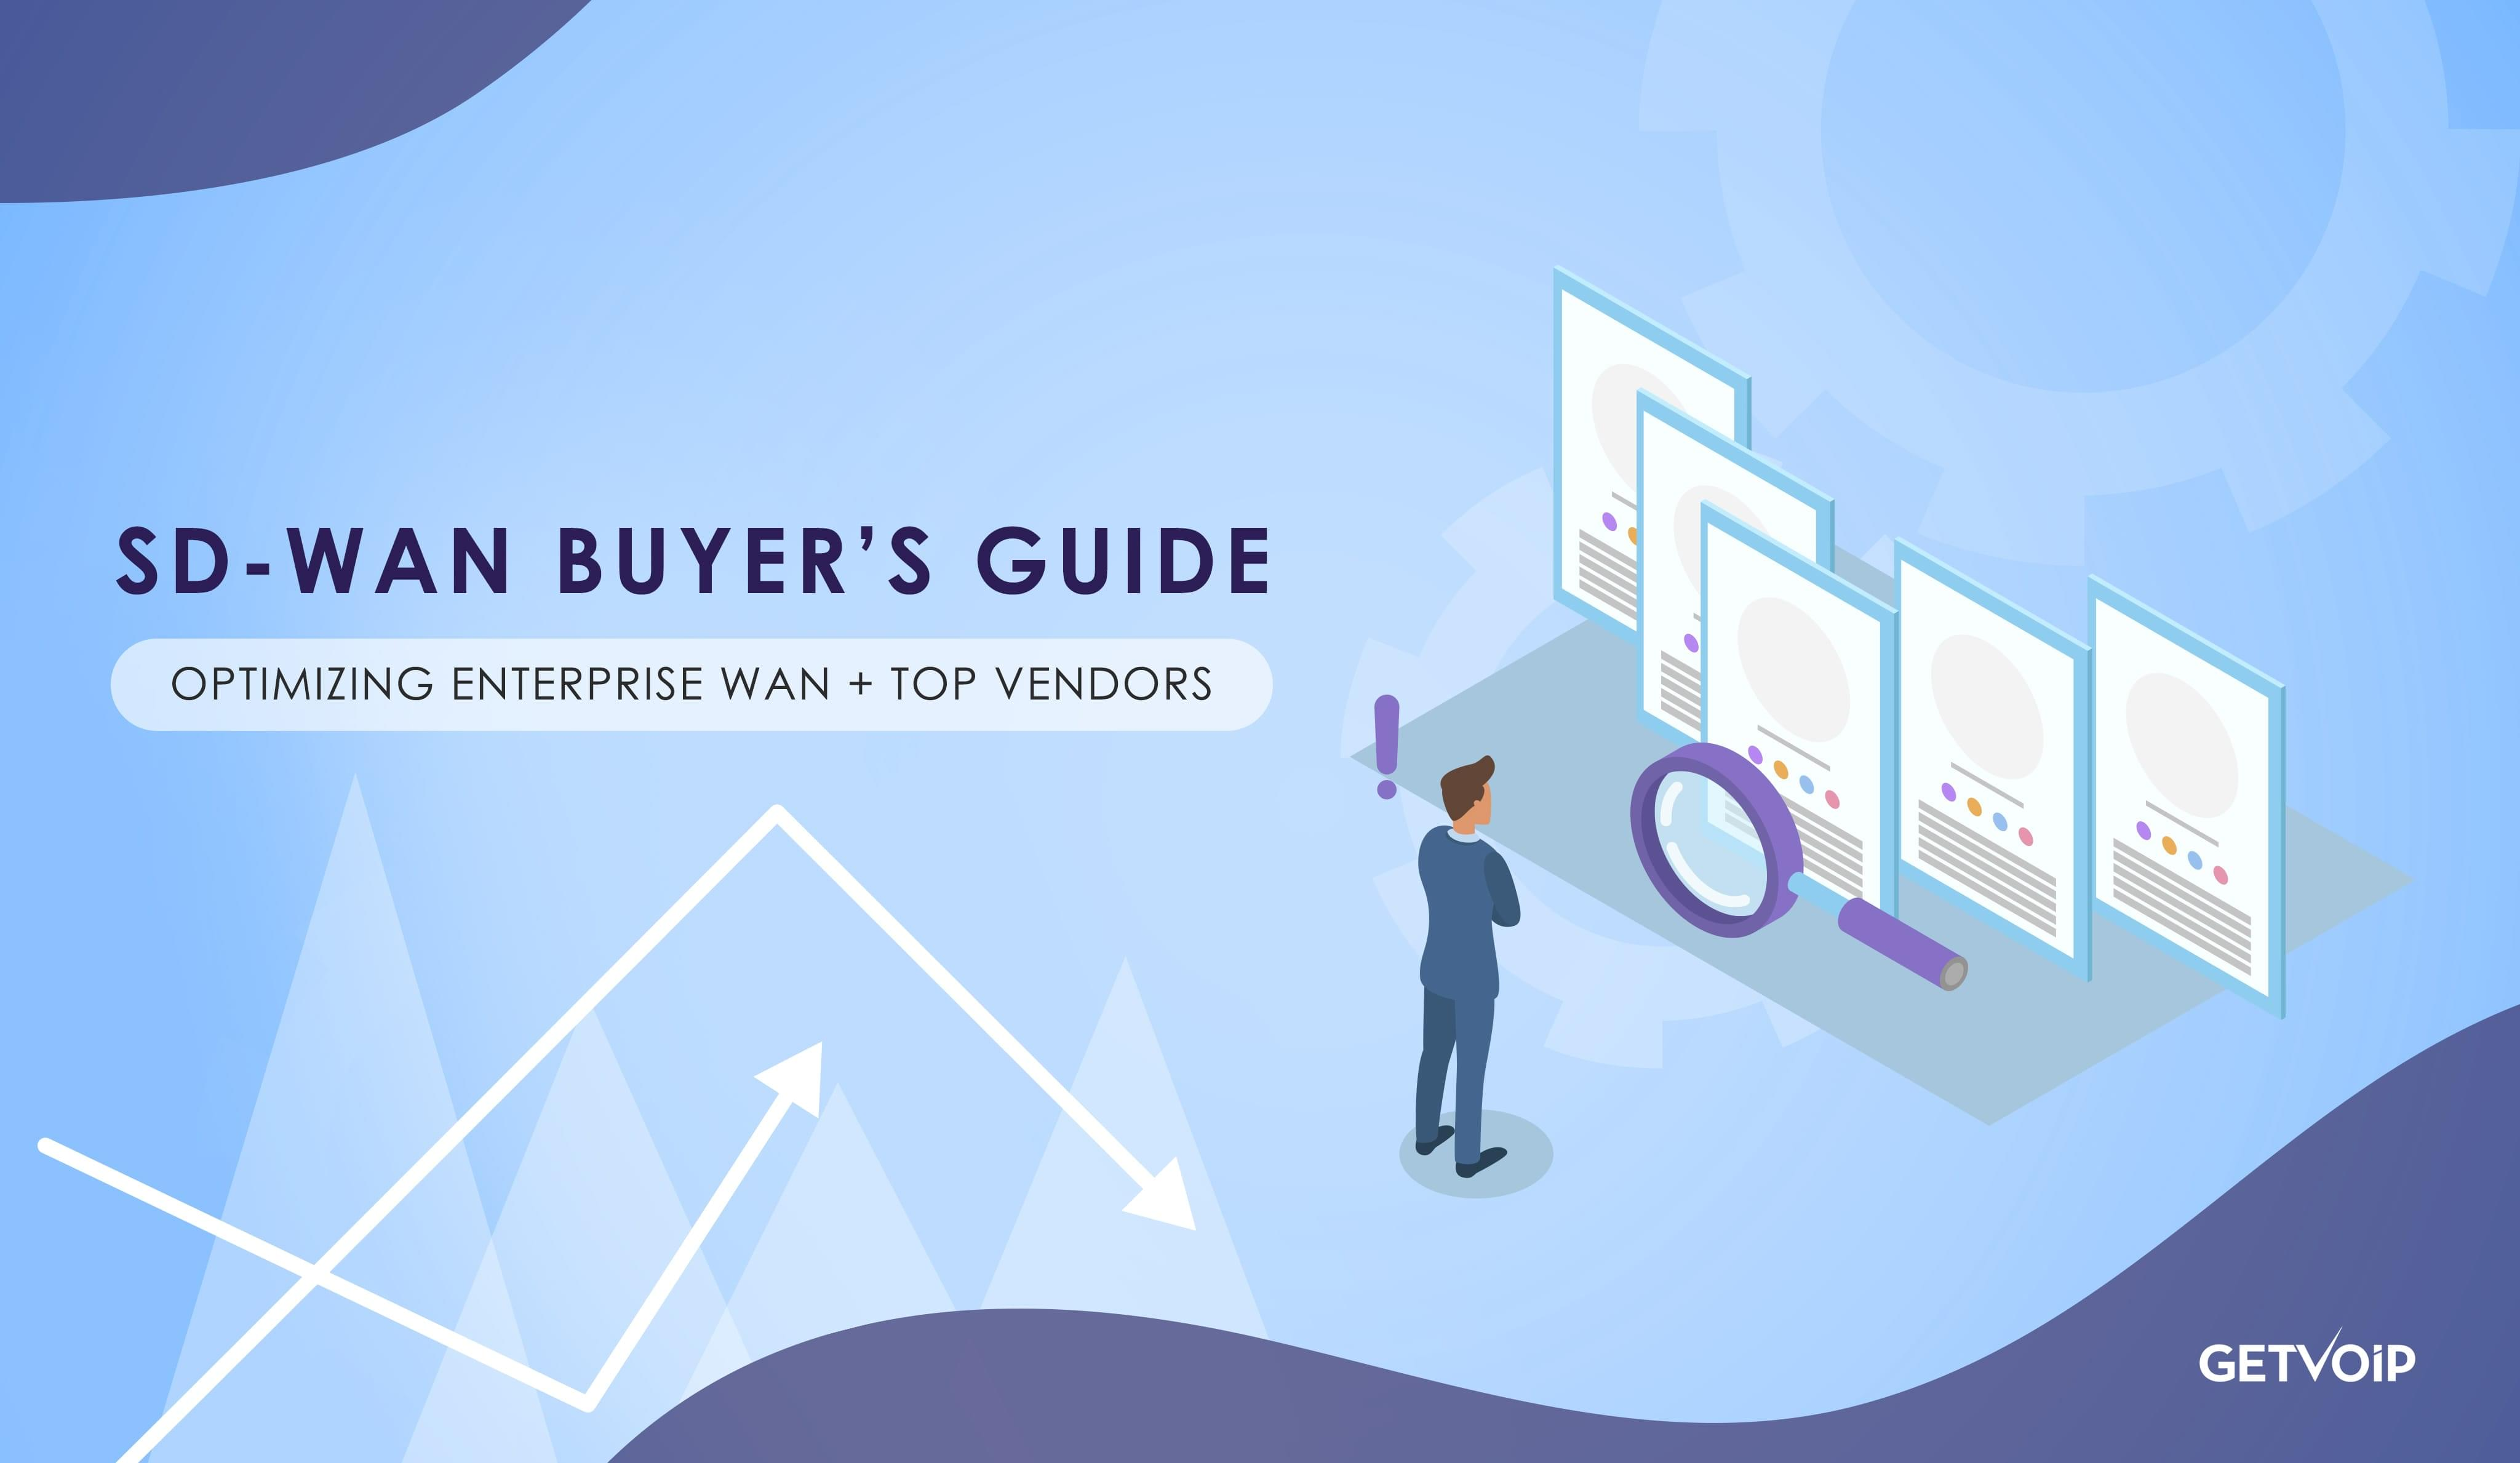 SD-WAN For Business: A Buyer's Guide to Optimize Enterprise WAN